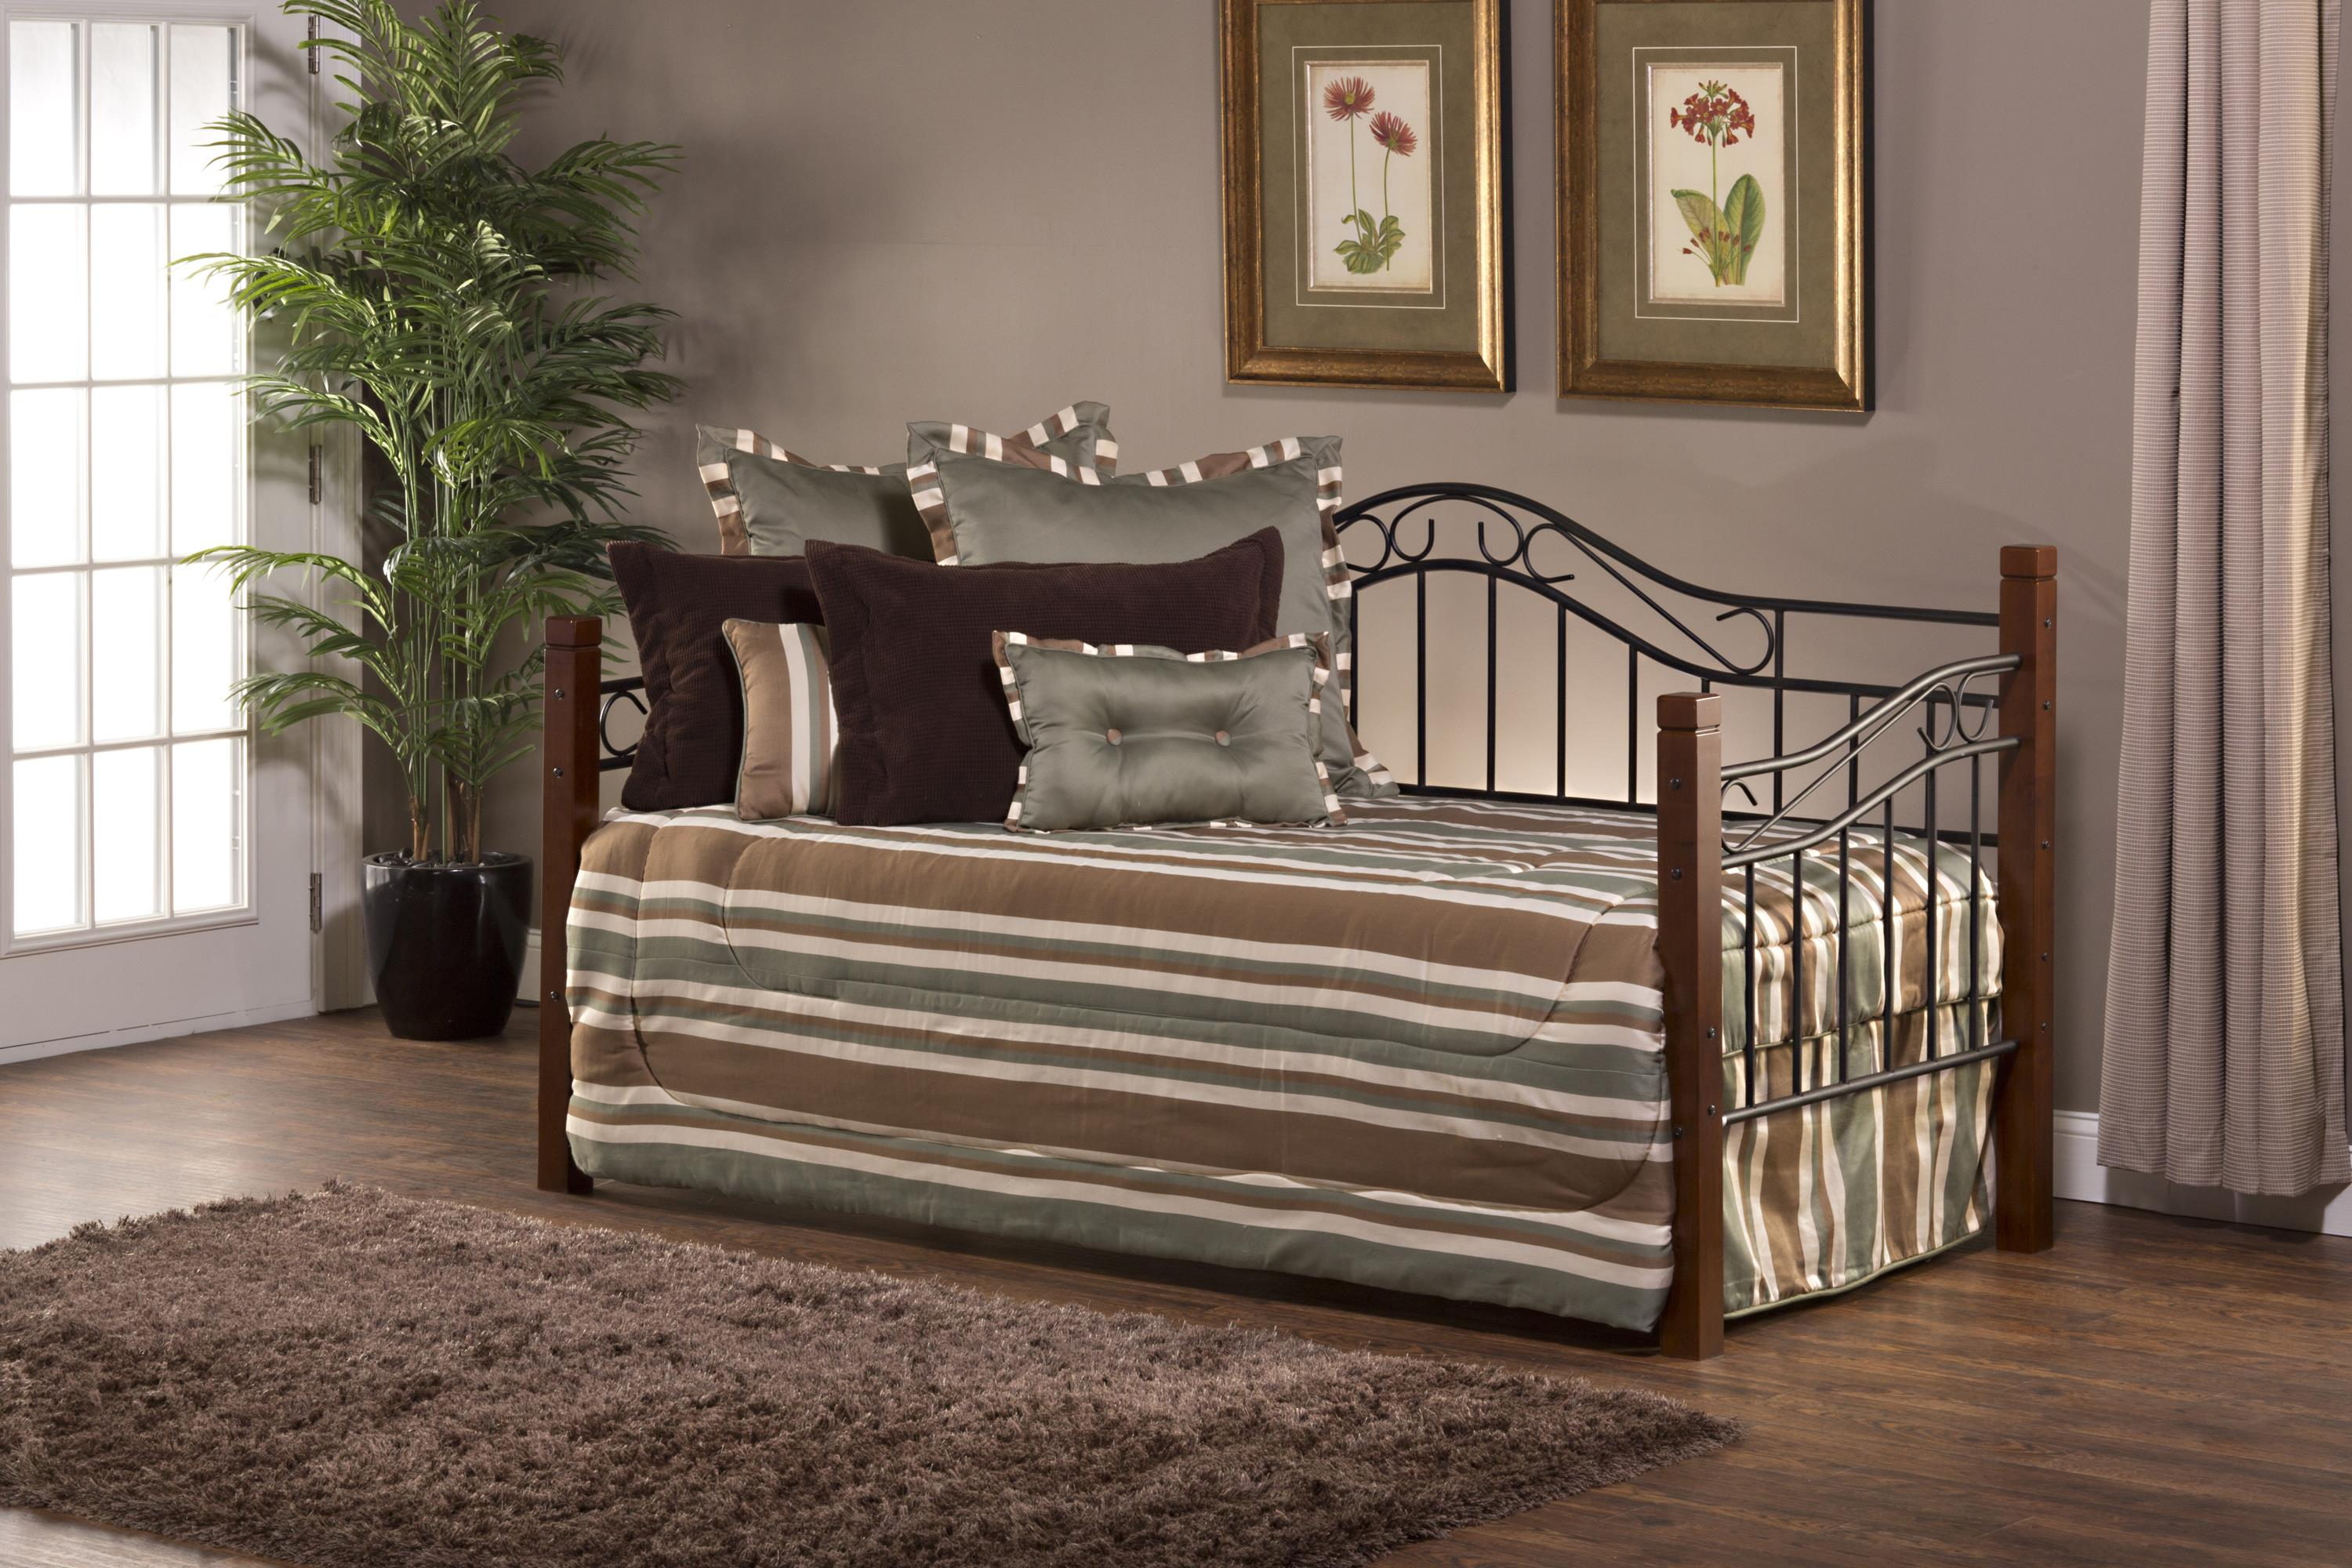 Hillsdale Daybeds Matson Daybed with Suspension Deck - Item Number: 1159DBLH